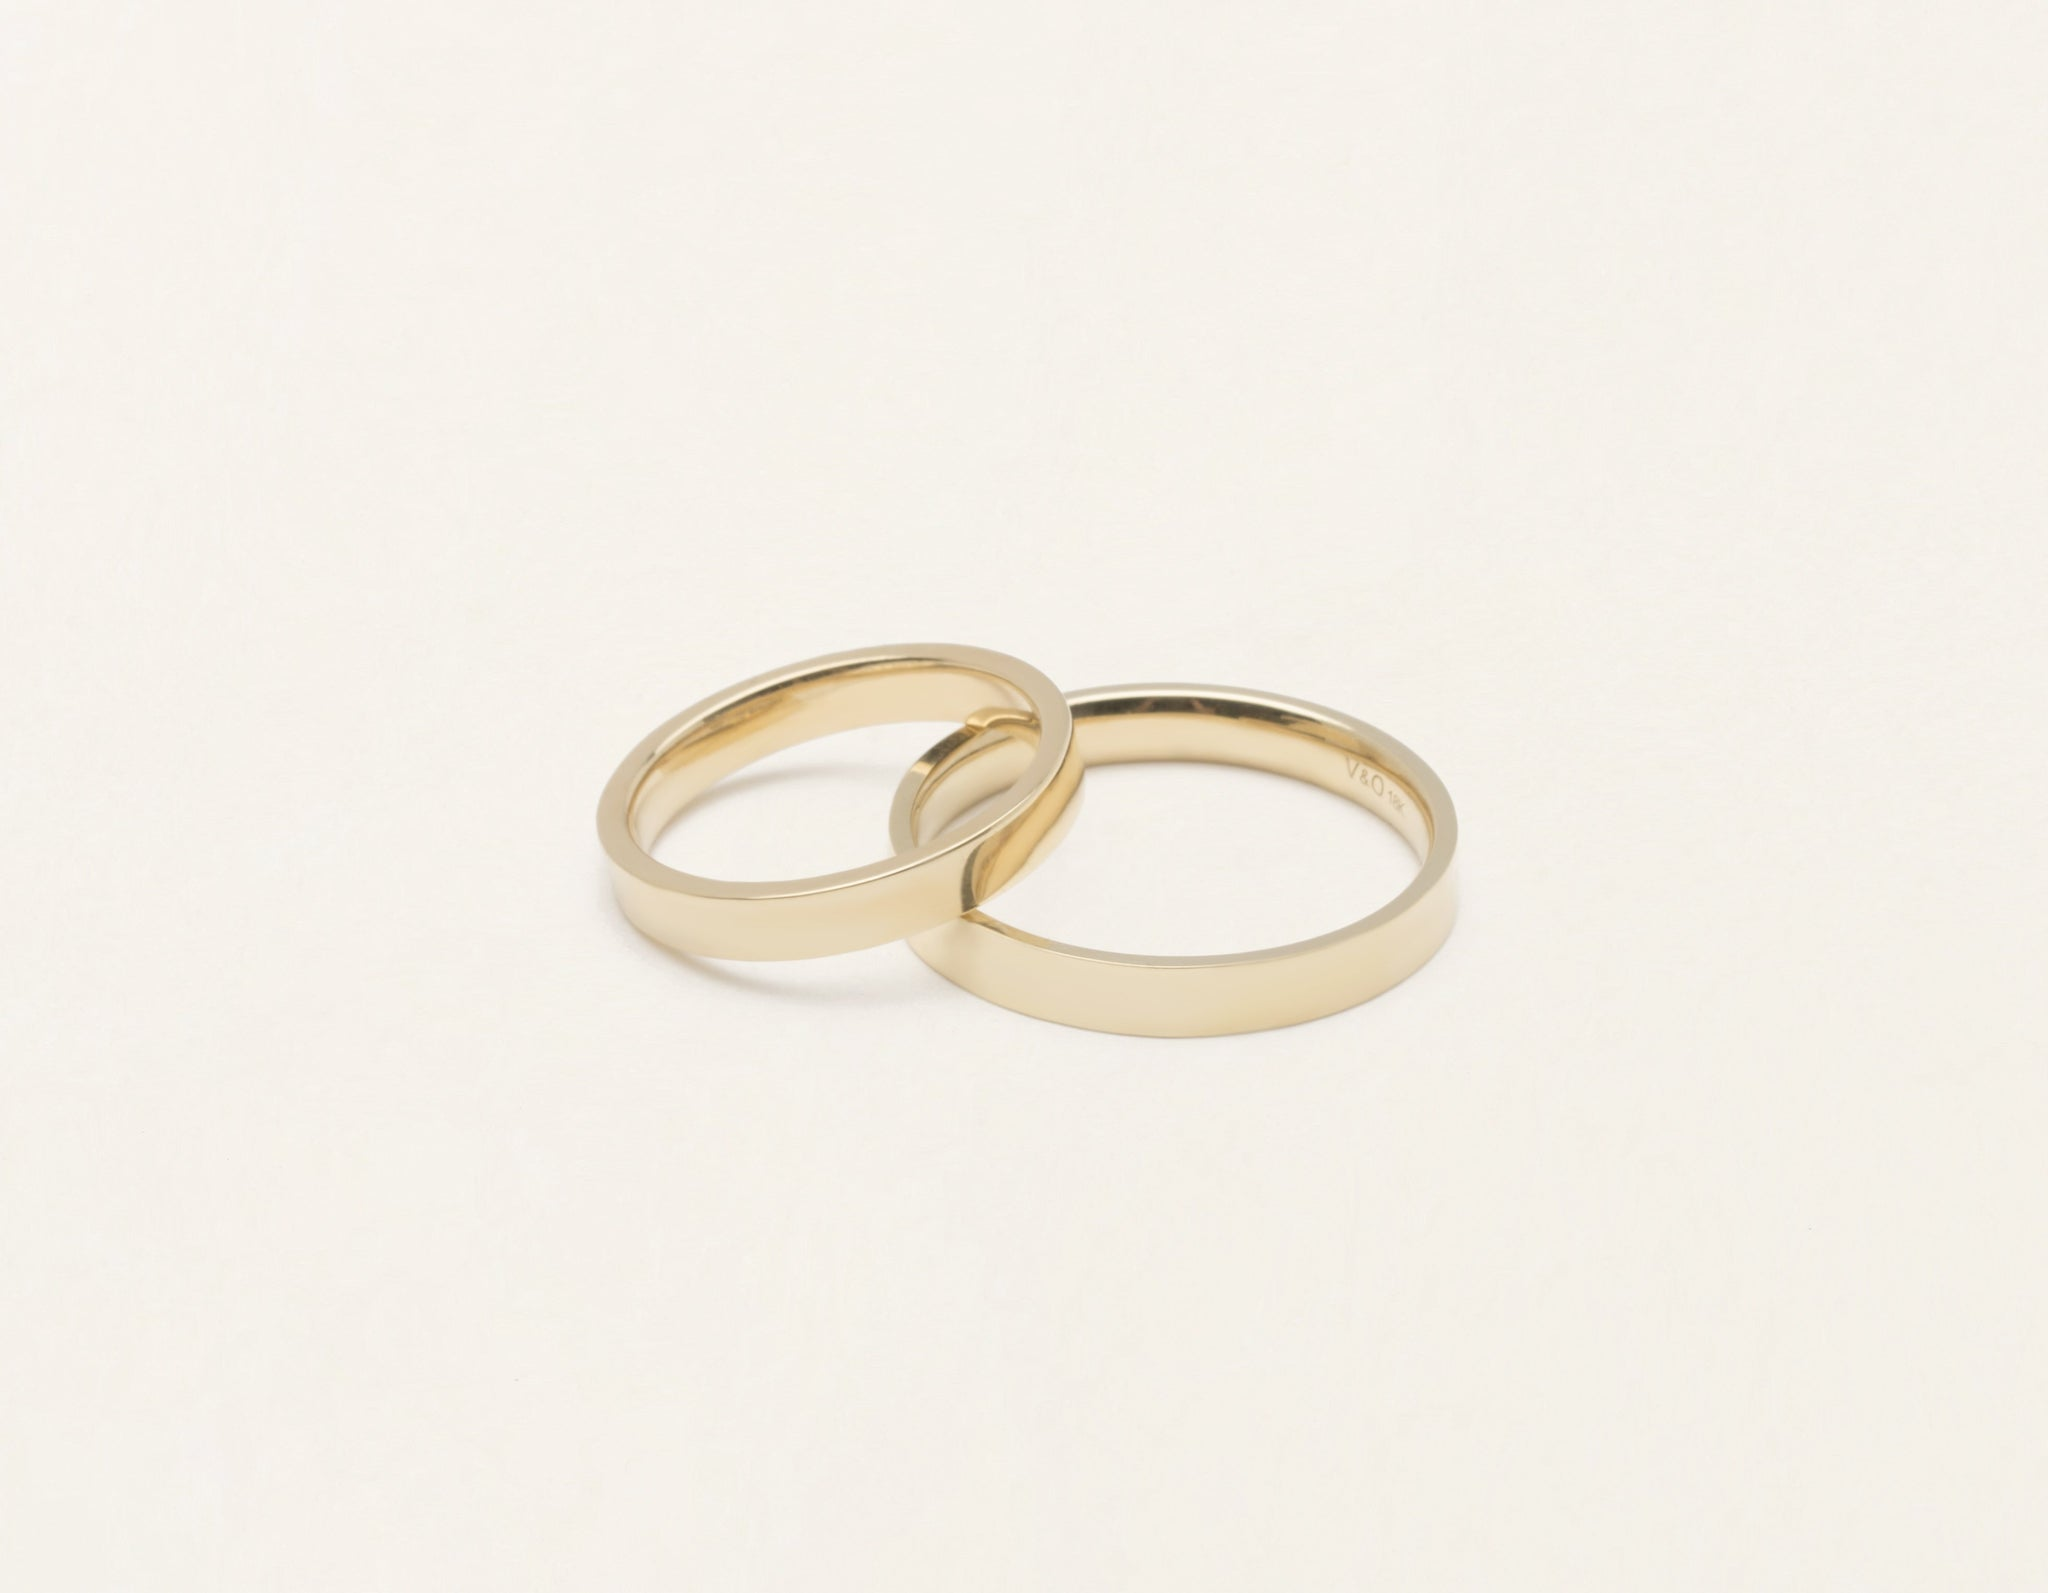 Vrai & Oro 18k solid yellow gold Wedding Band 3 Flat unisex simple classic band